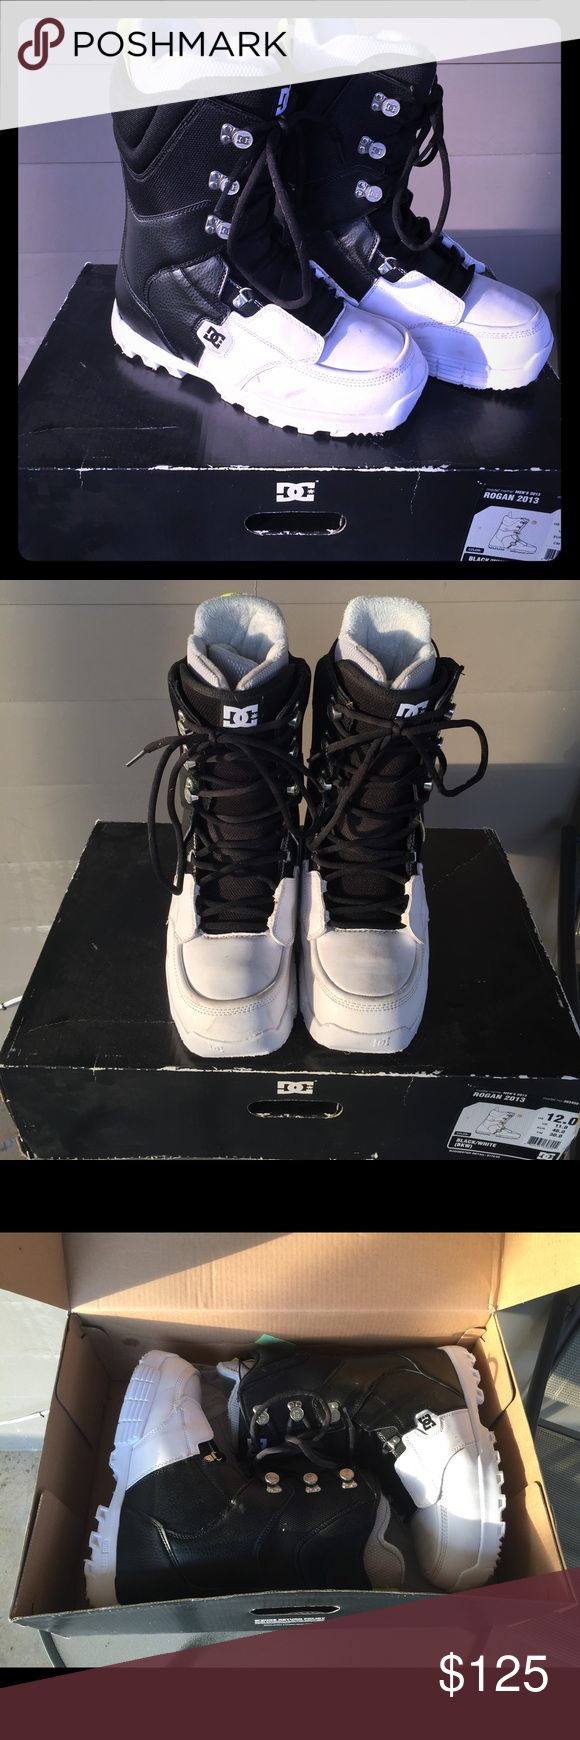 Men's DC Shoe Company Snowboard Boots DC Shie Company Rogan 2013 Snowboard Boots. Size 12 - true to size. Black/White. Worn twice while vacationing in Alaska couple years back. Slight mark on left boot but will be cleaned before shipped. DC Shoes Boots